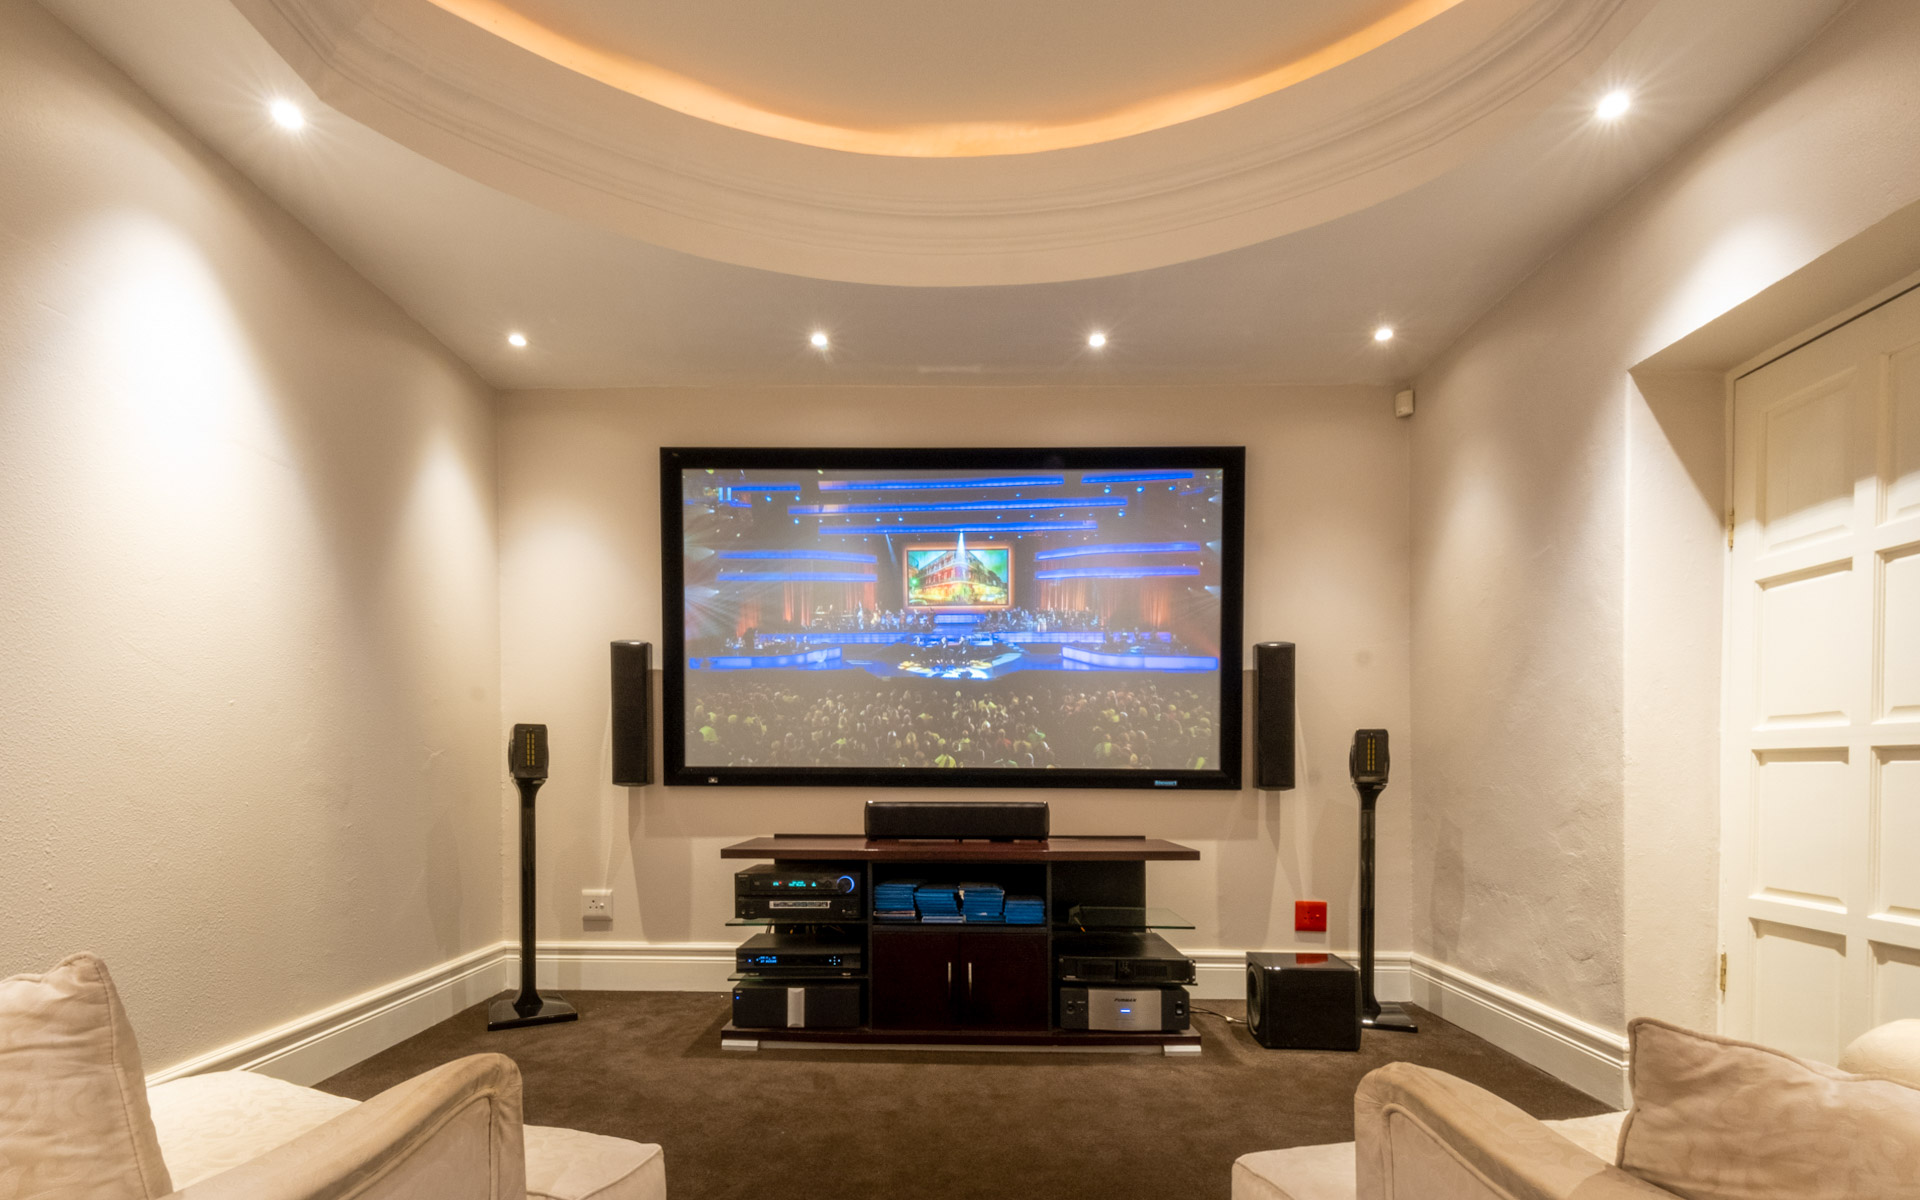 Sunfire Home Cinema by Elan